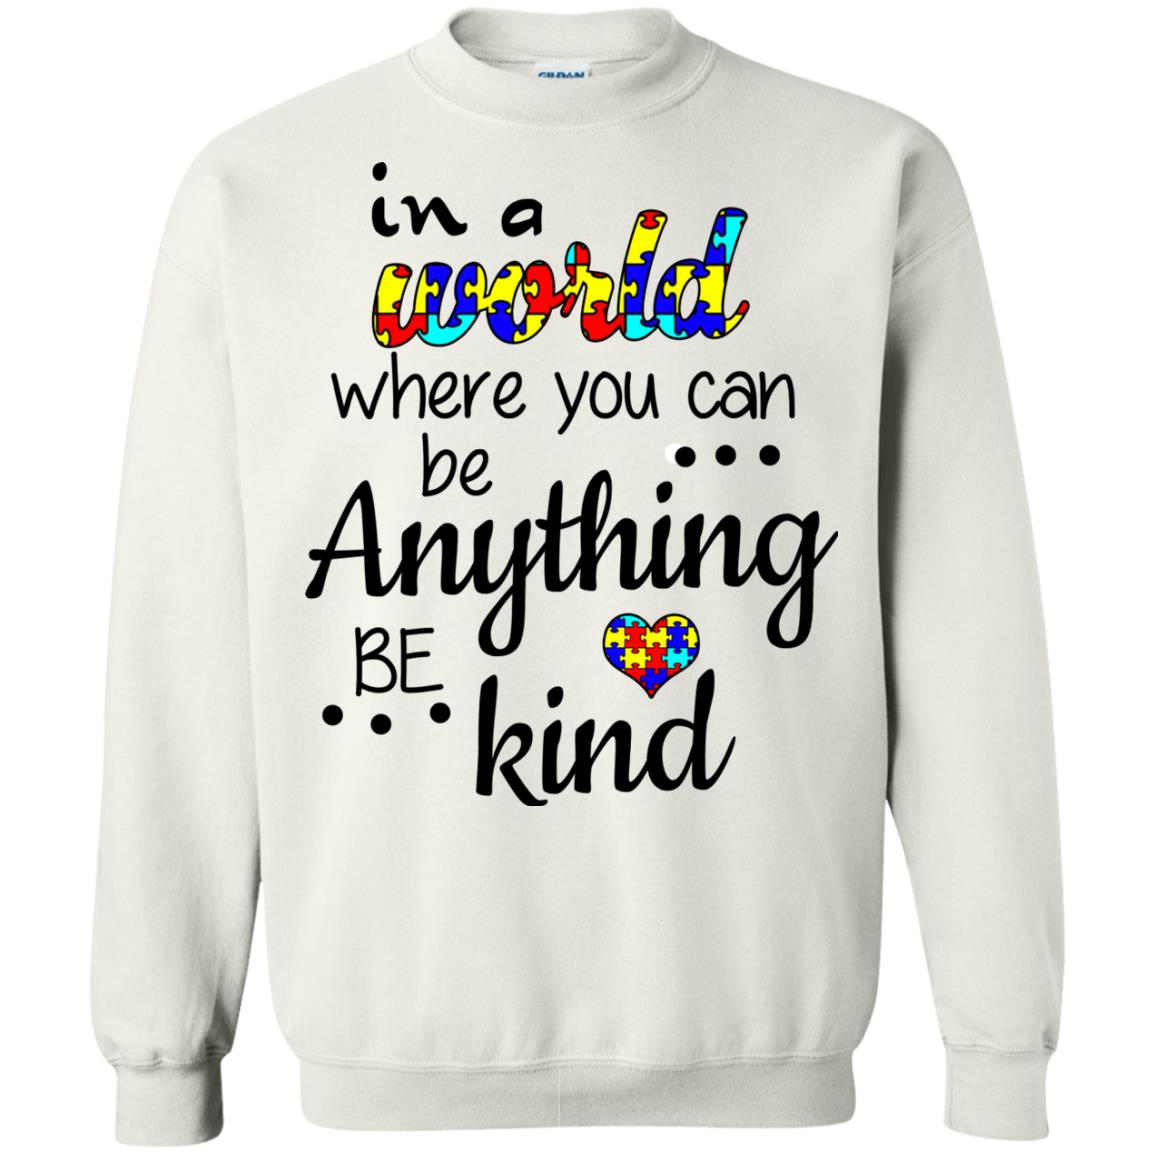 image 671 - Autism: In a World Where You Can Be Anything Be Kind Shirt